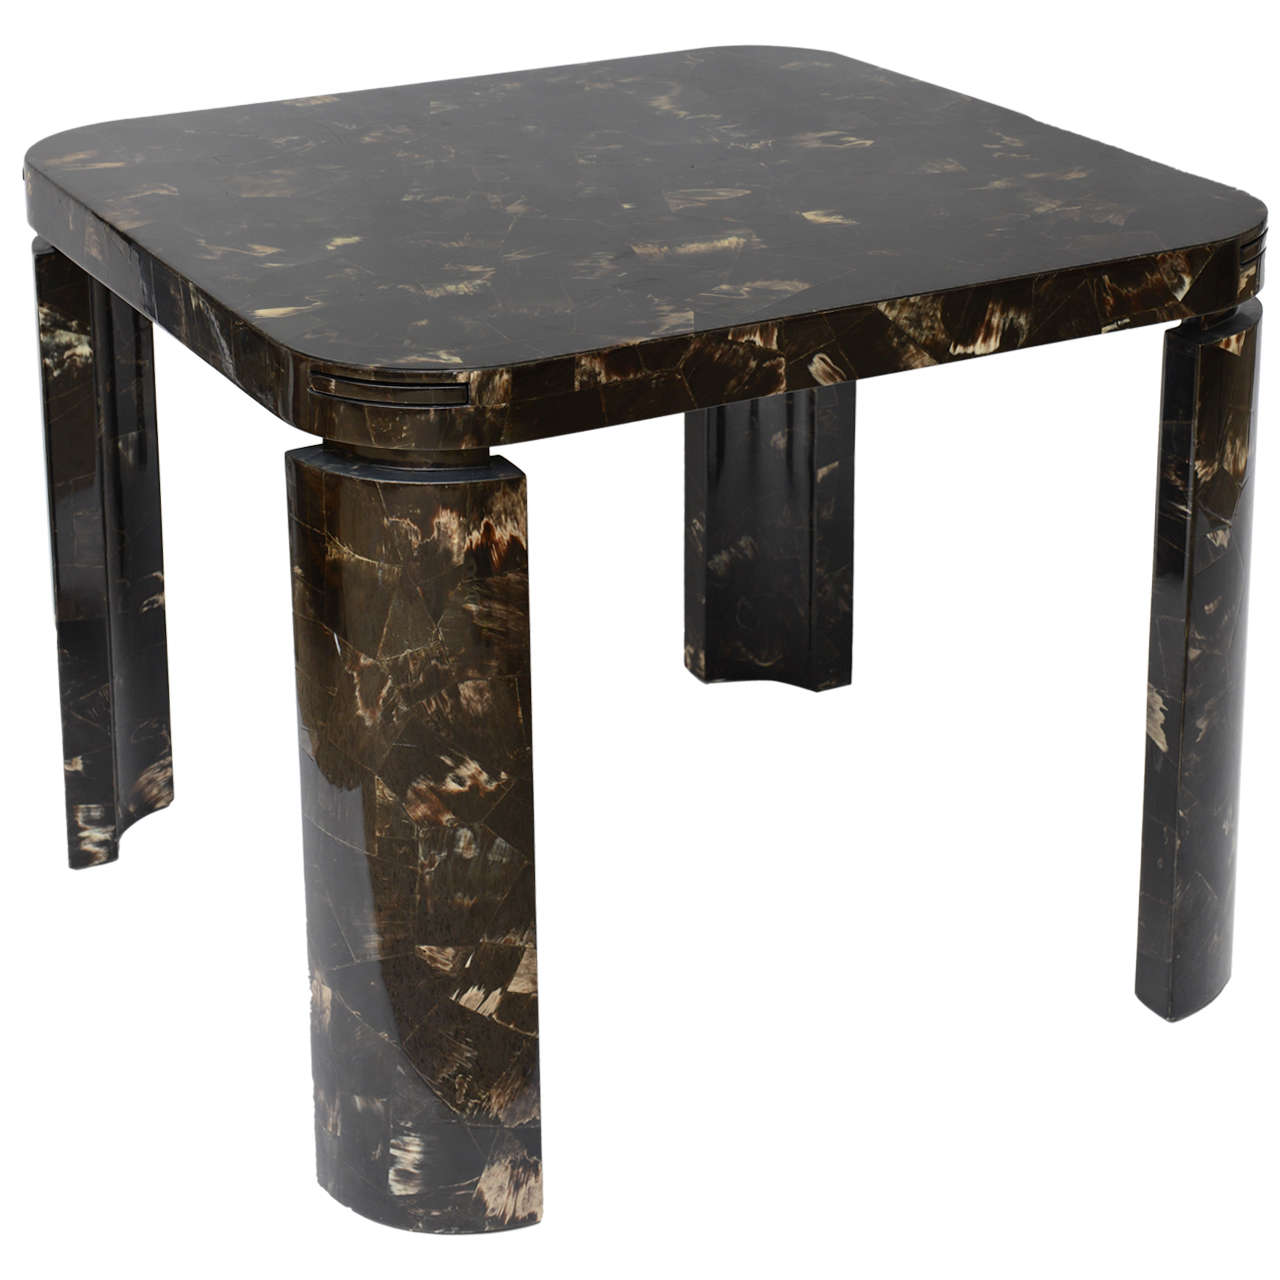 Horn game table in the manner of karl springer at 1stdibs for 11 in 1 game table